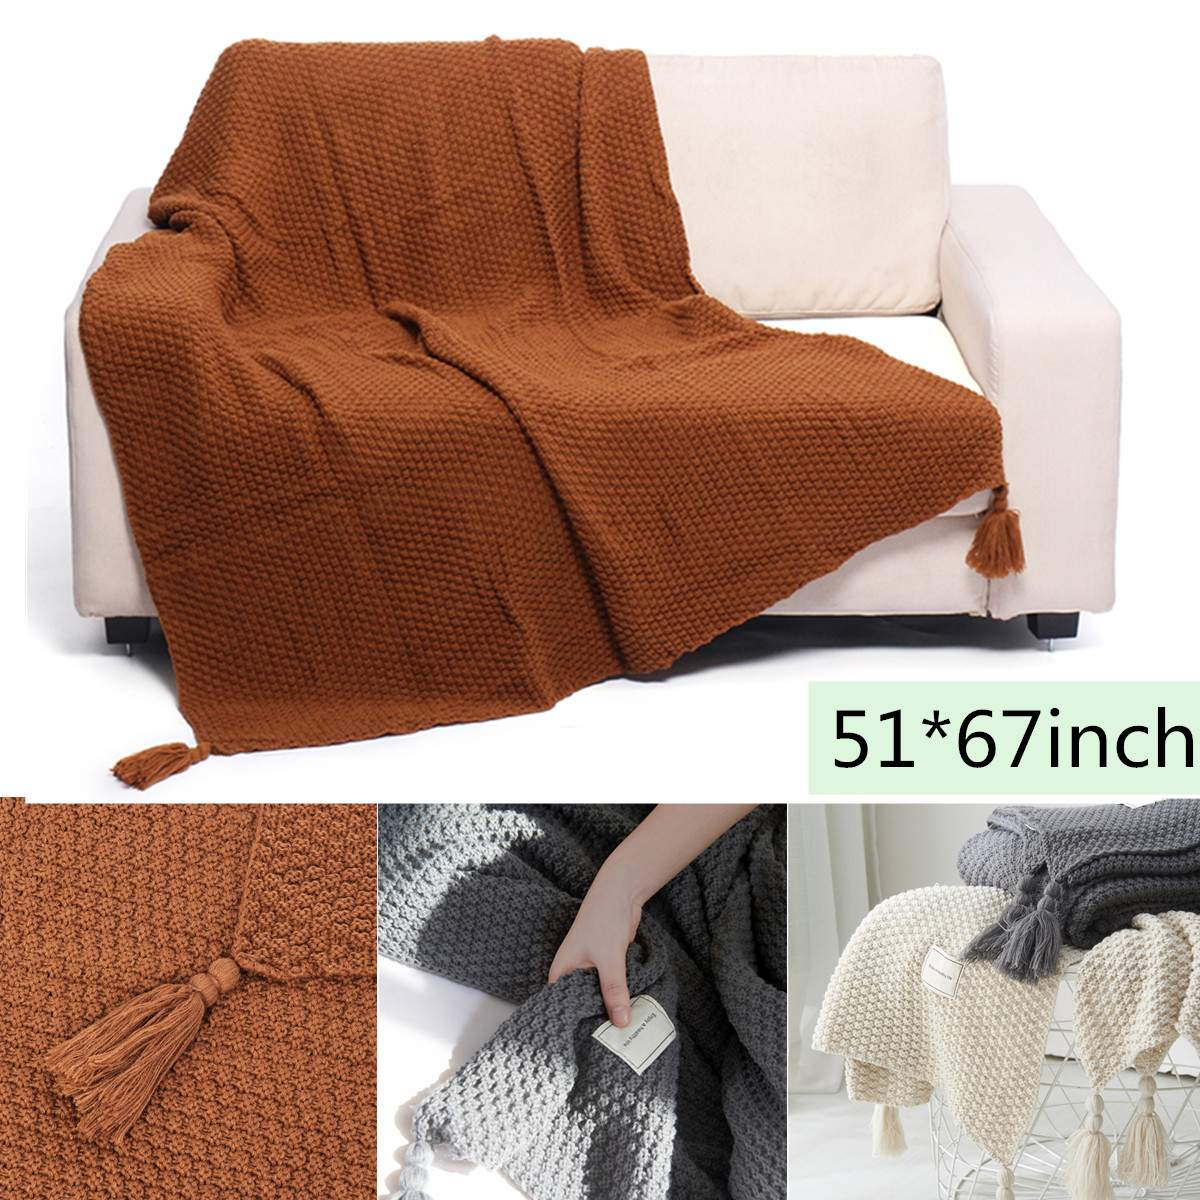 130x170cm Solid Color Air Conditioning Travel Blanket With Tassel Knitted Blanket for Bed Sofa Home Textile Throw Blanket